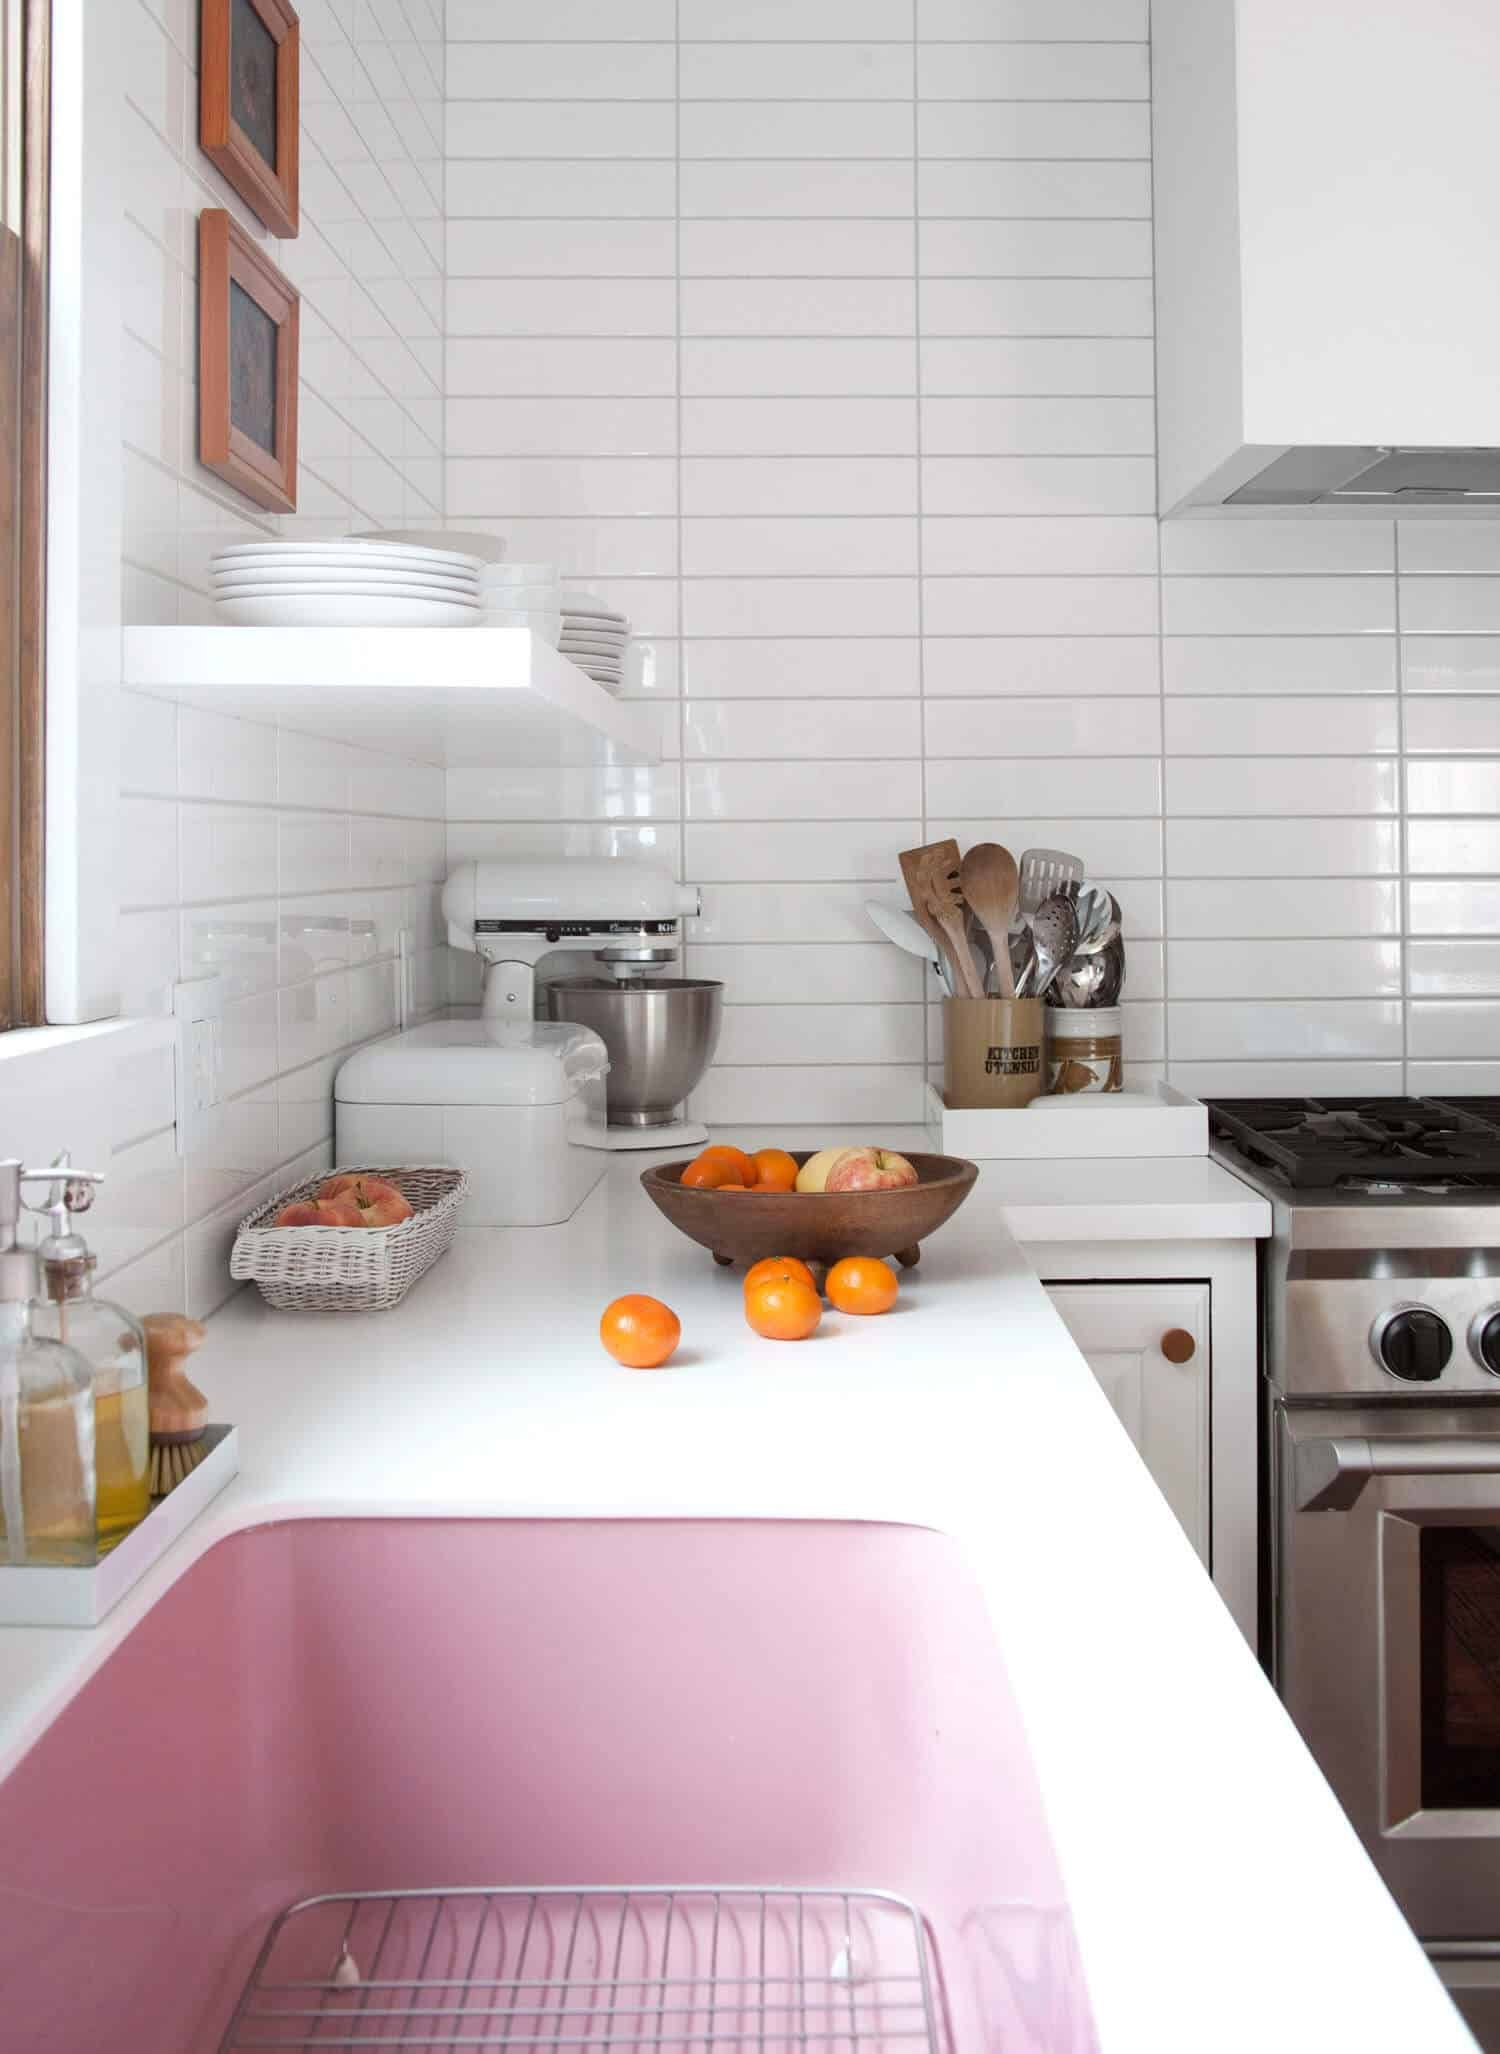 15 Ways to Save Money on a Home Renovation